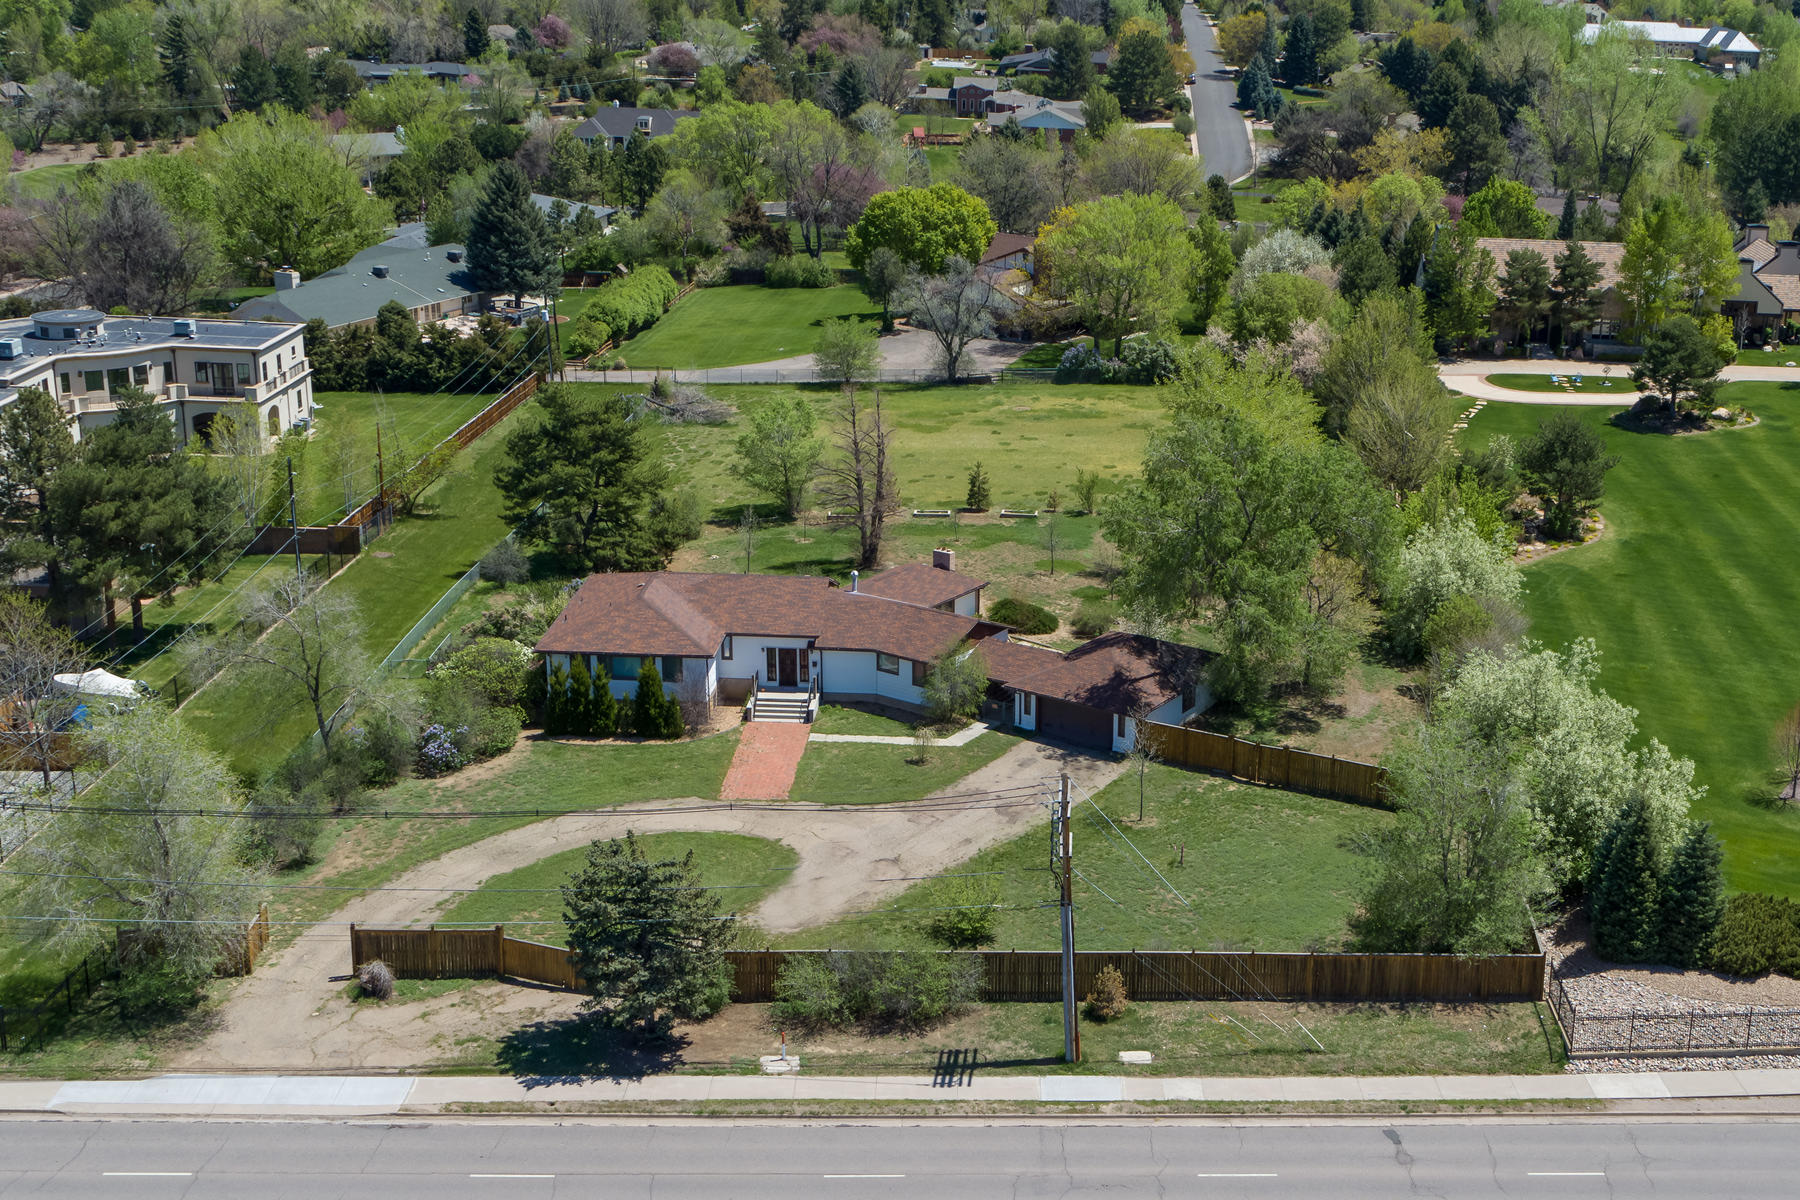 Casa Unifamiliar por un Venta en Undeniably some of the most spectacular panoramic Rocky Mountain & sunset views! 4650 S University Blvd Englewood, Colorado 80113 Estados Unidos